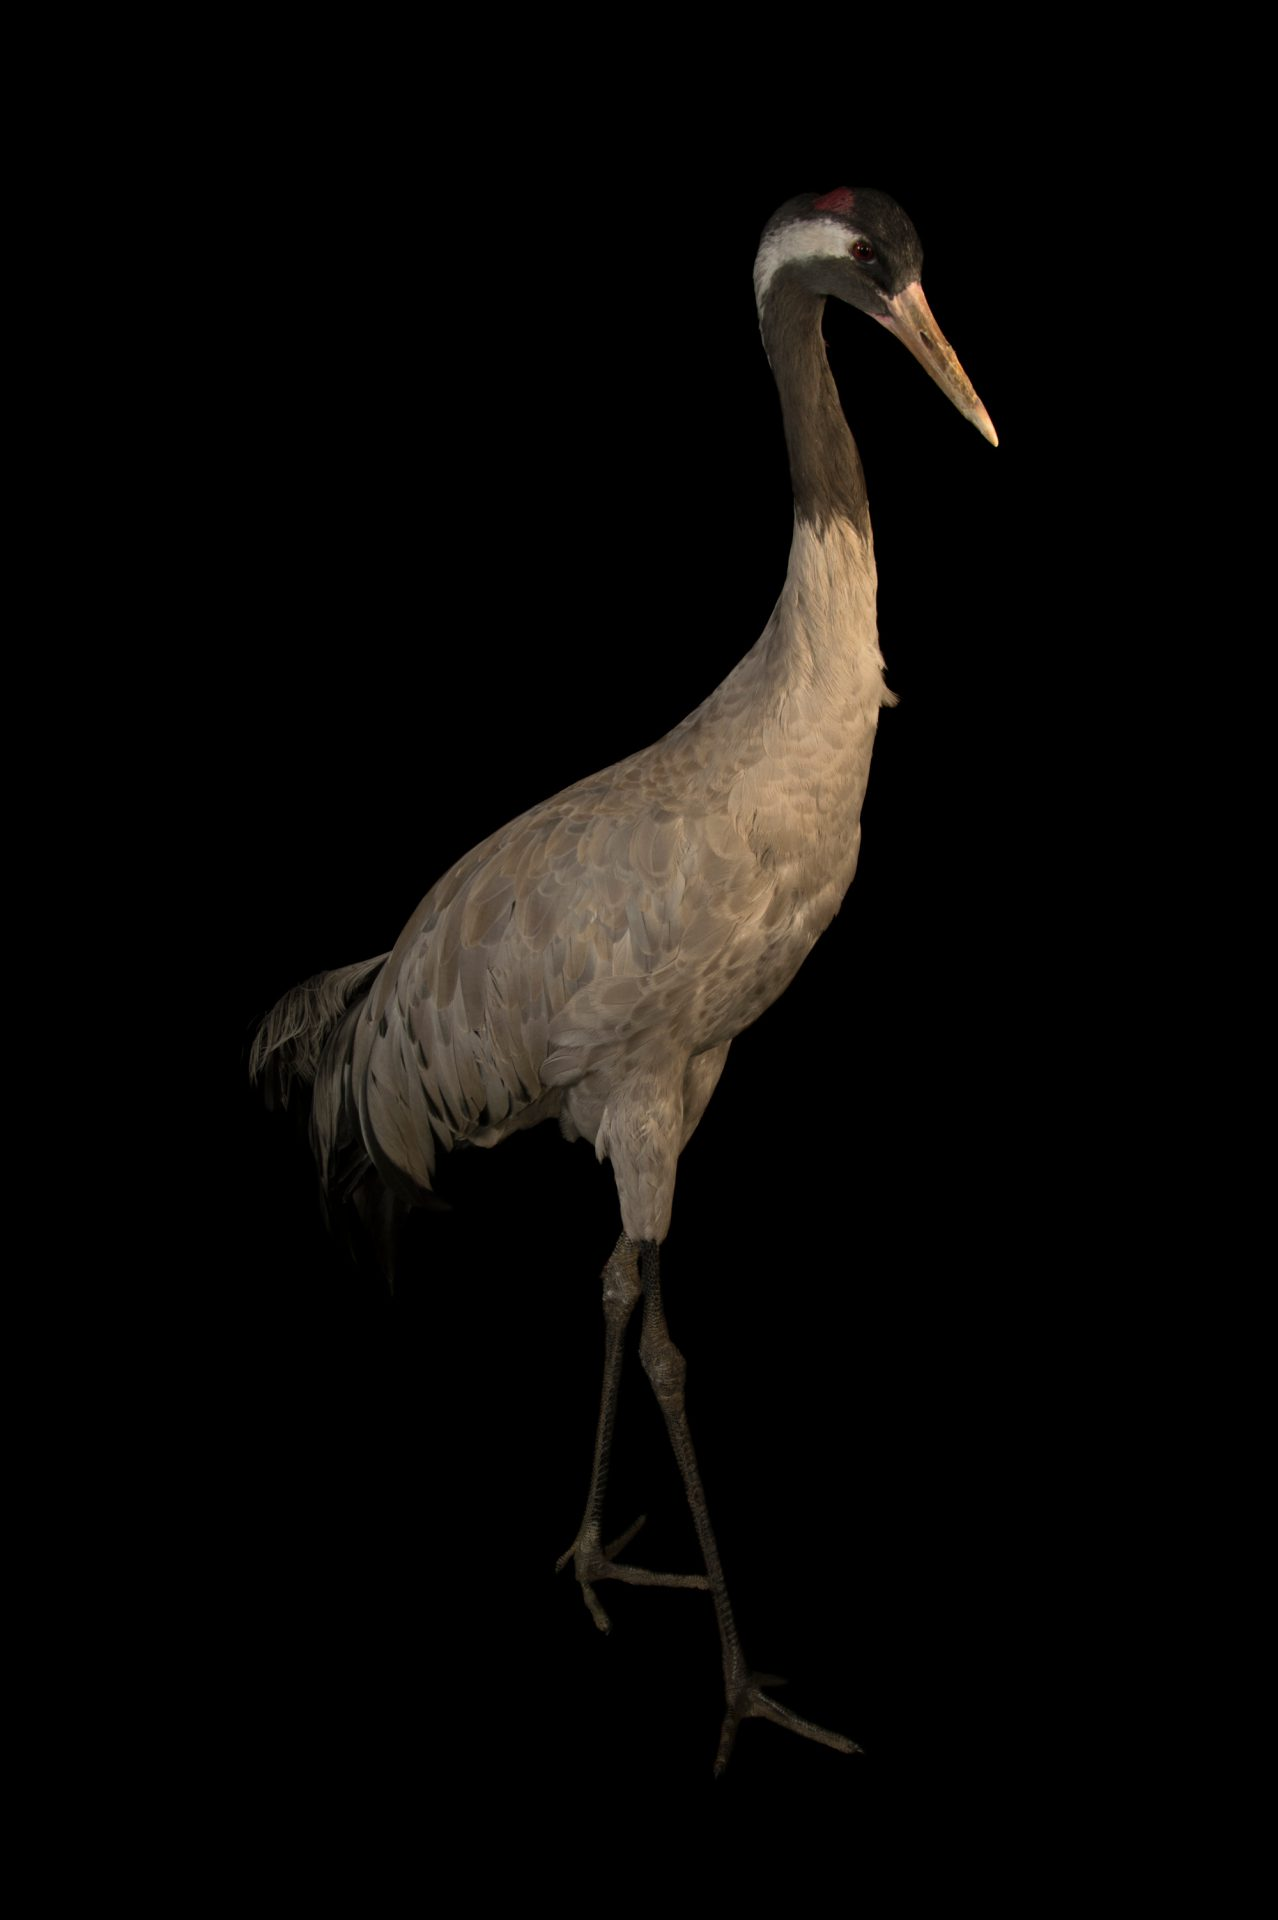 Photo: Eurasian (grey) crane (Grus grus grus) at Parc des Oiseaux in Villars Les Dombes, France.